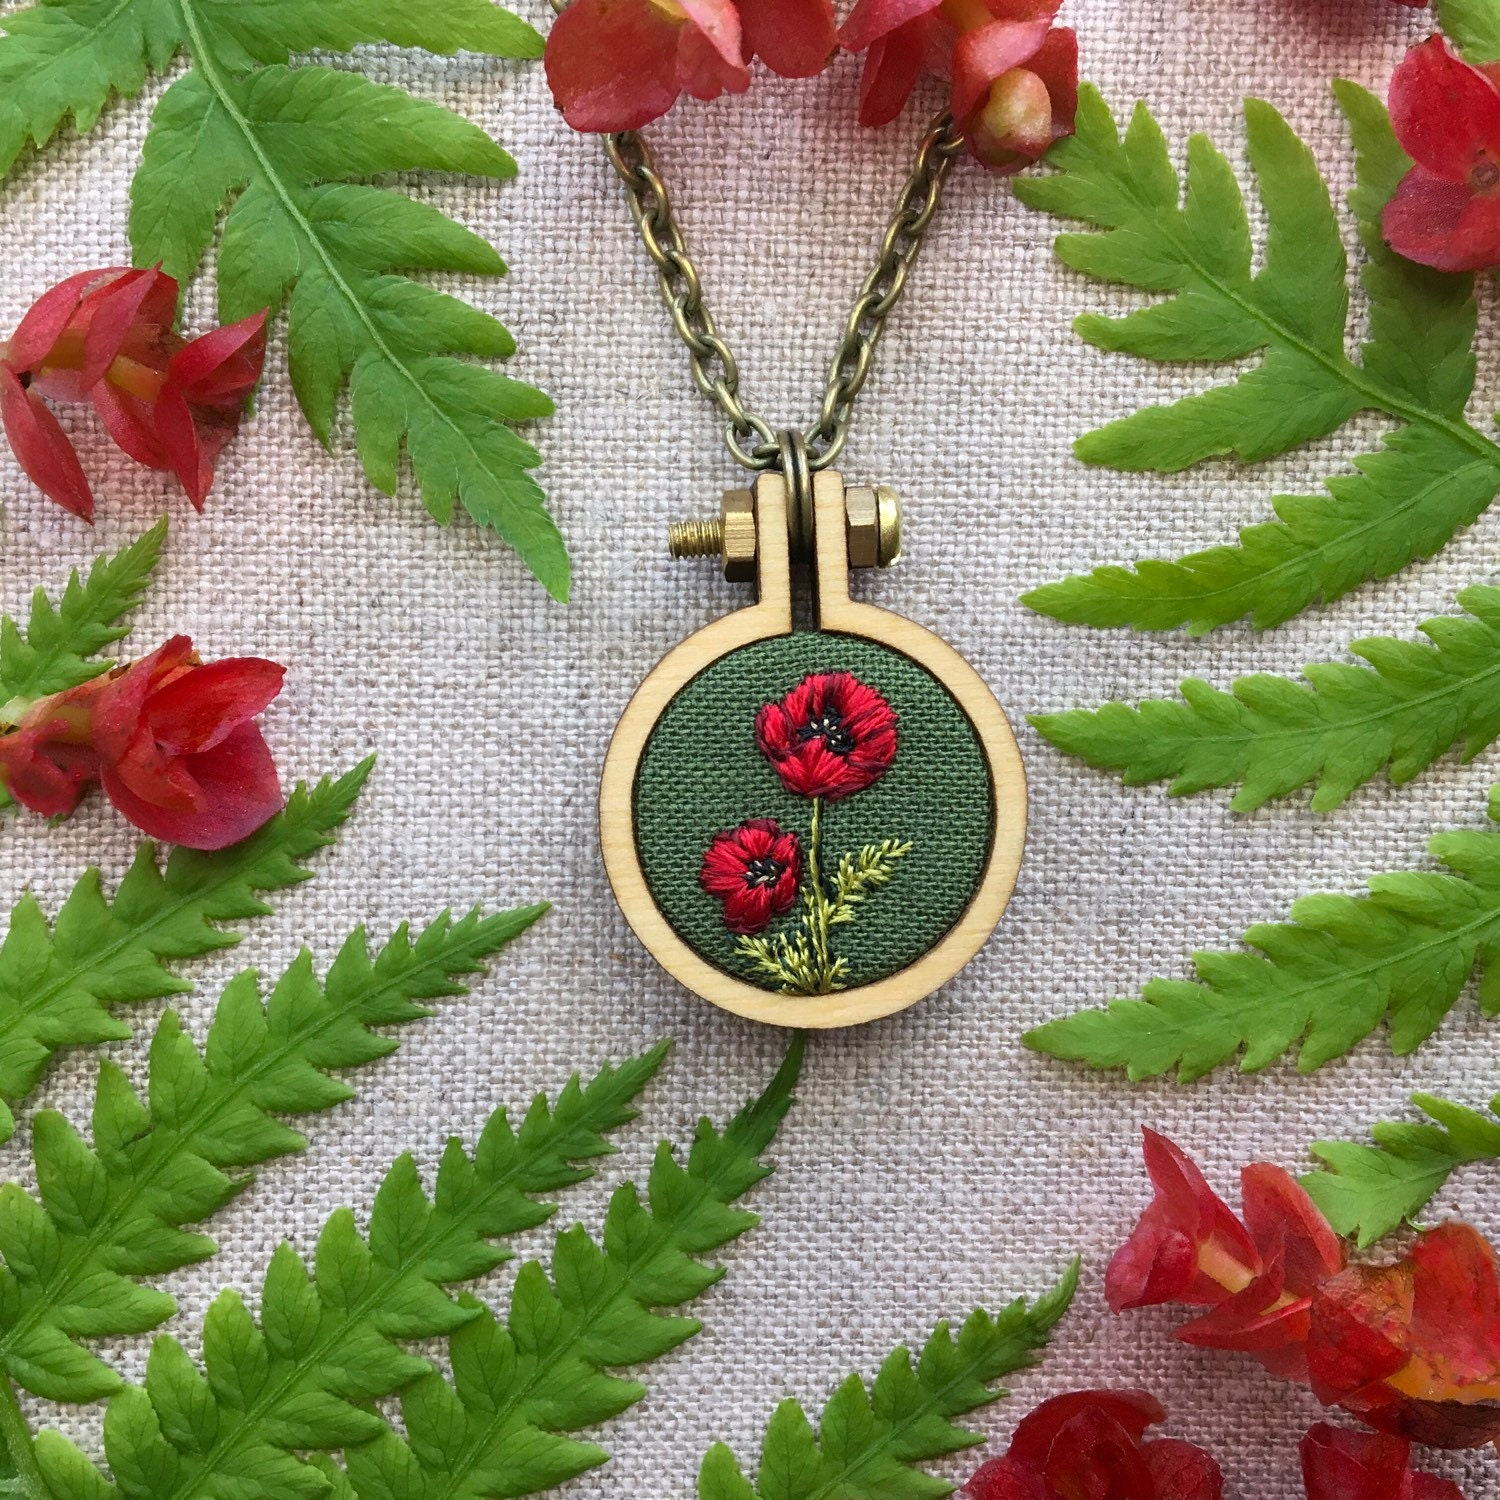 Red poppy hand embroidered pendant august birth flower silk red poppy hand embroidered pendant august birth flower silk embroidery miniature art necklace mightylinksfo